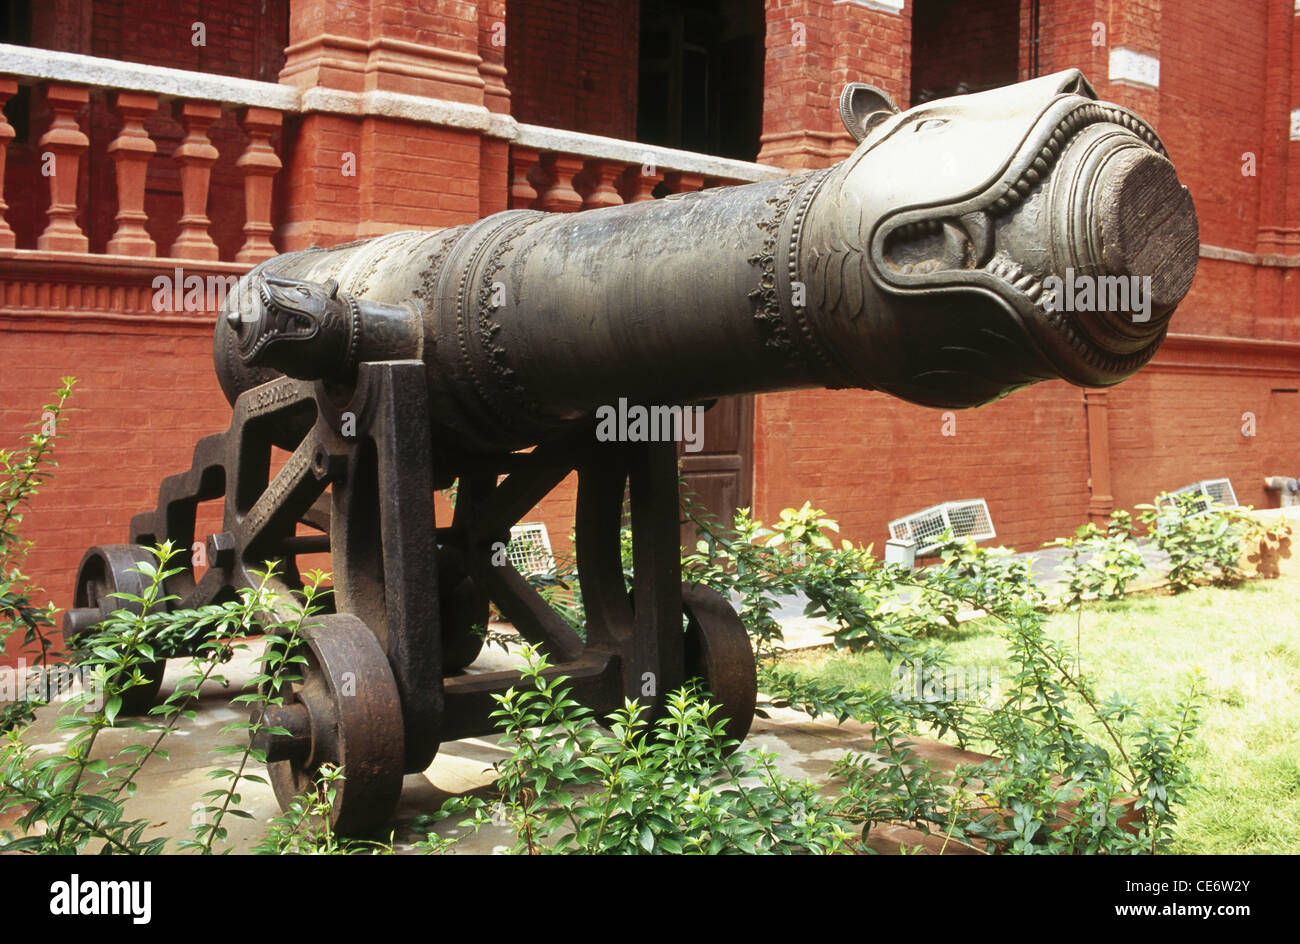 NMK 83297 : old antique cannon used by tipu sultan in 1799 war government museum chennai tamil nadu india - Stock Image